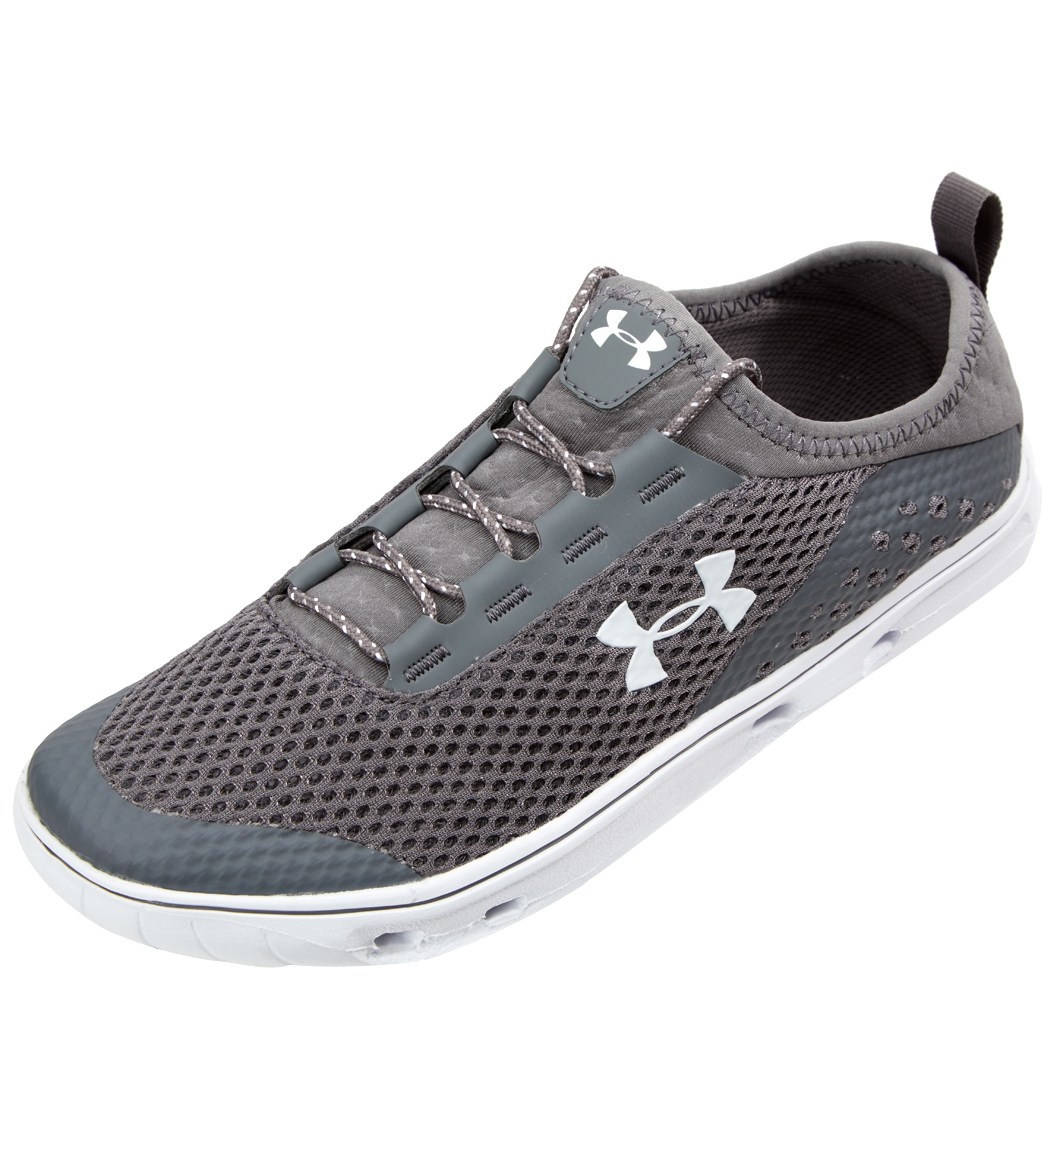 4acb9a96014 Under Armour Women's Kilchis Water Shoes at SwimOutlet.com - Free Shipping